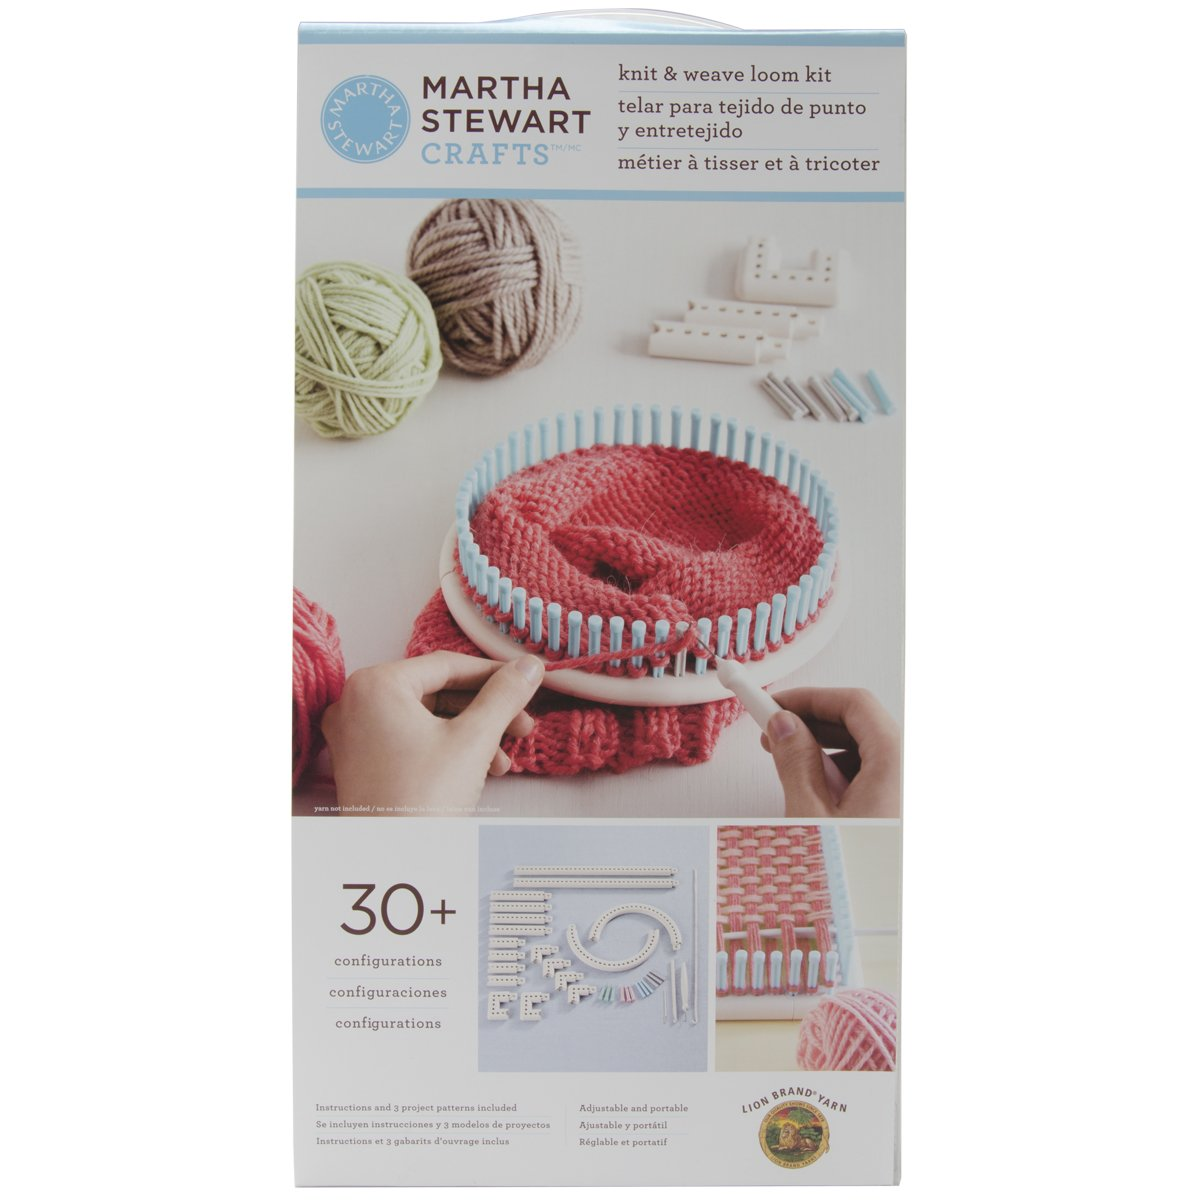 Lion Brand Yarn Martha Stewart Crafts Knit and Weave Loom Kit 5000-100